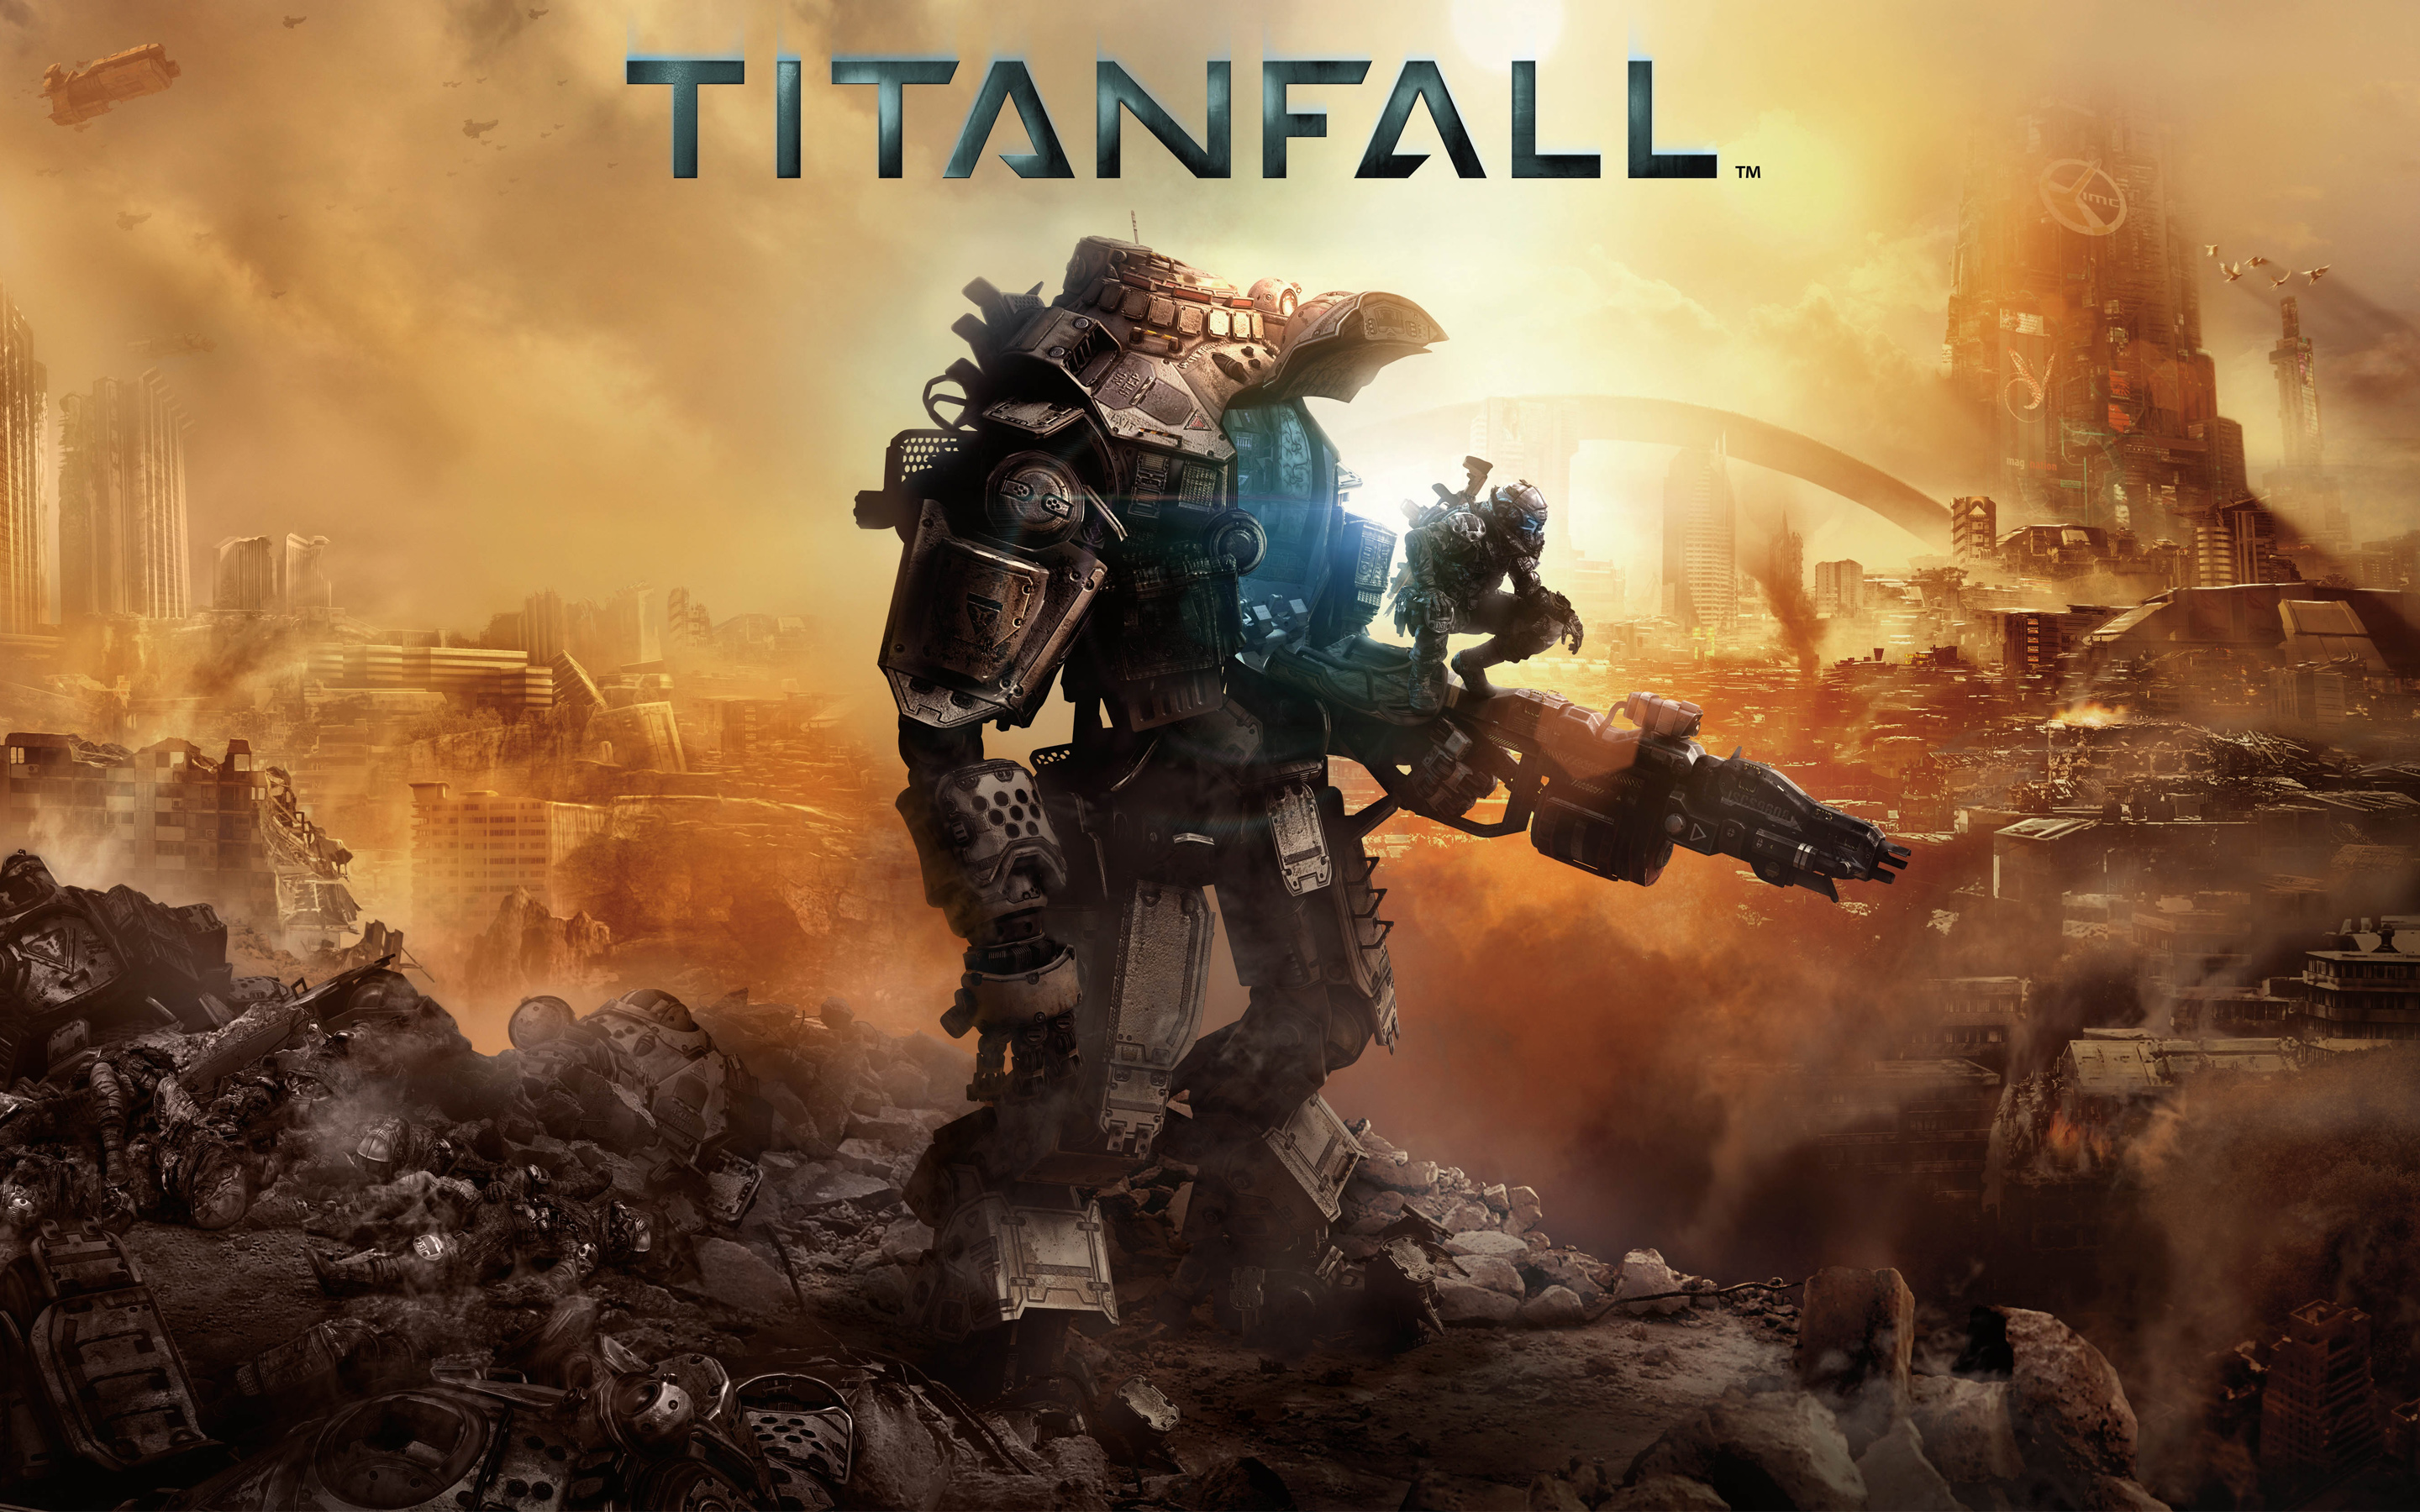 Titanfall Wallpaper